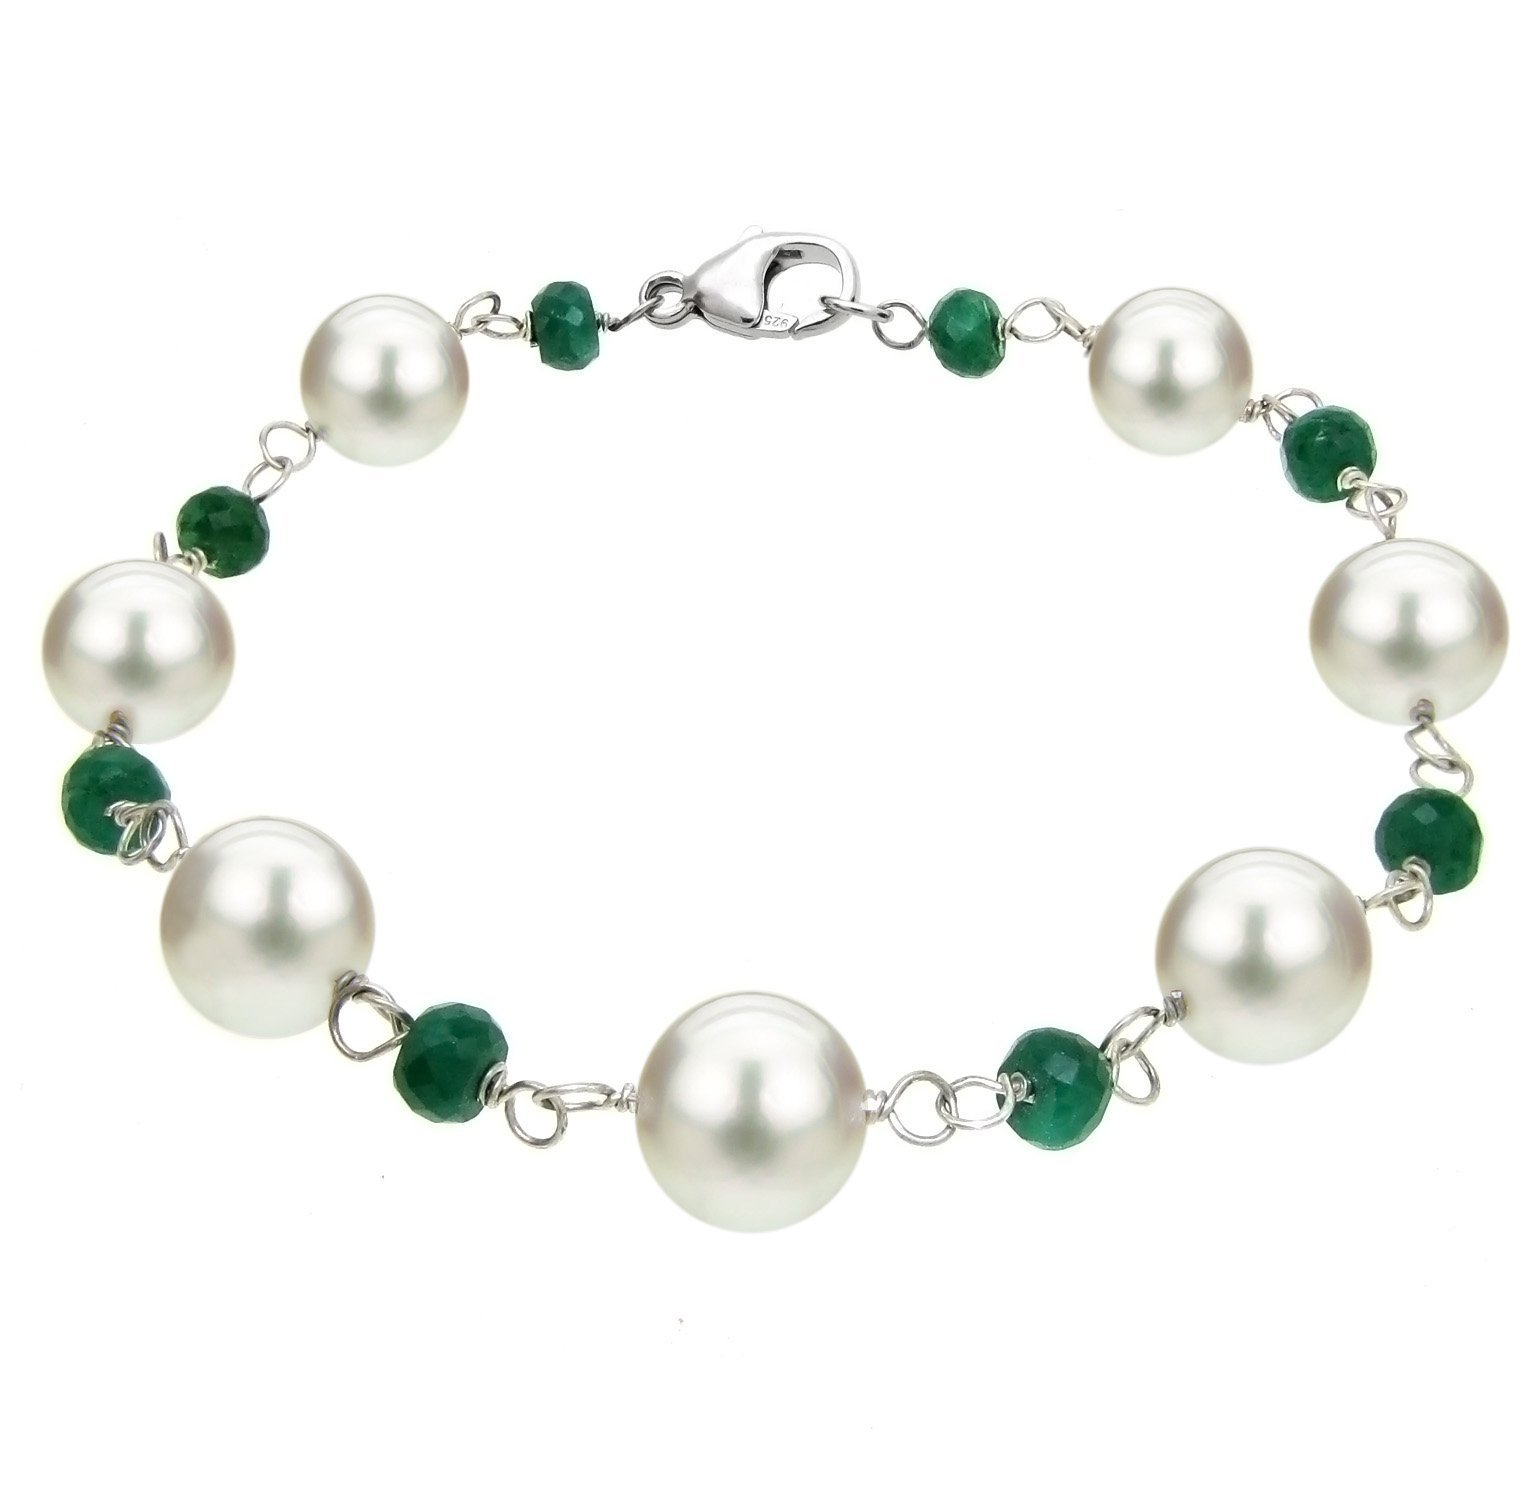 La Regis Jewelry Sterling Silver 8-8.5mm White Freshwater Cultured Pearl 4mm Simulated Green Emerald Bracelet, 7.5''